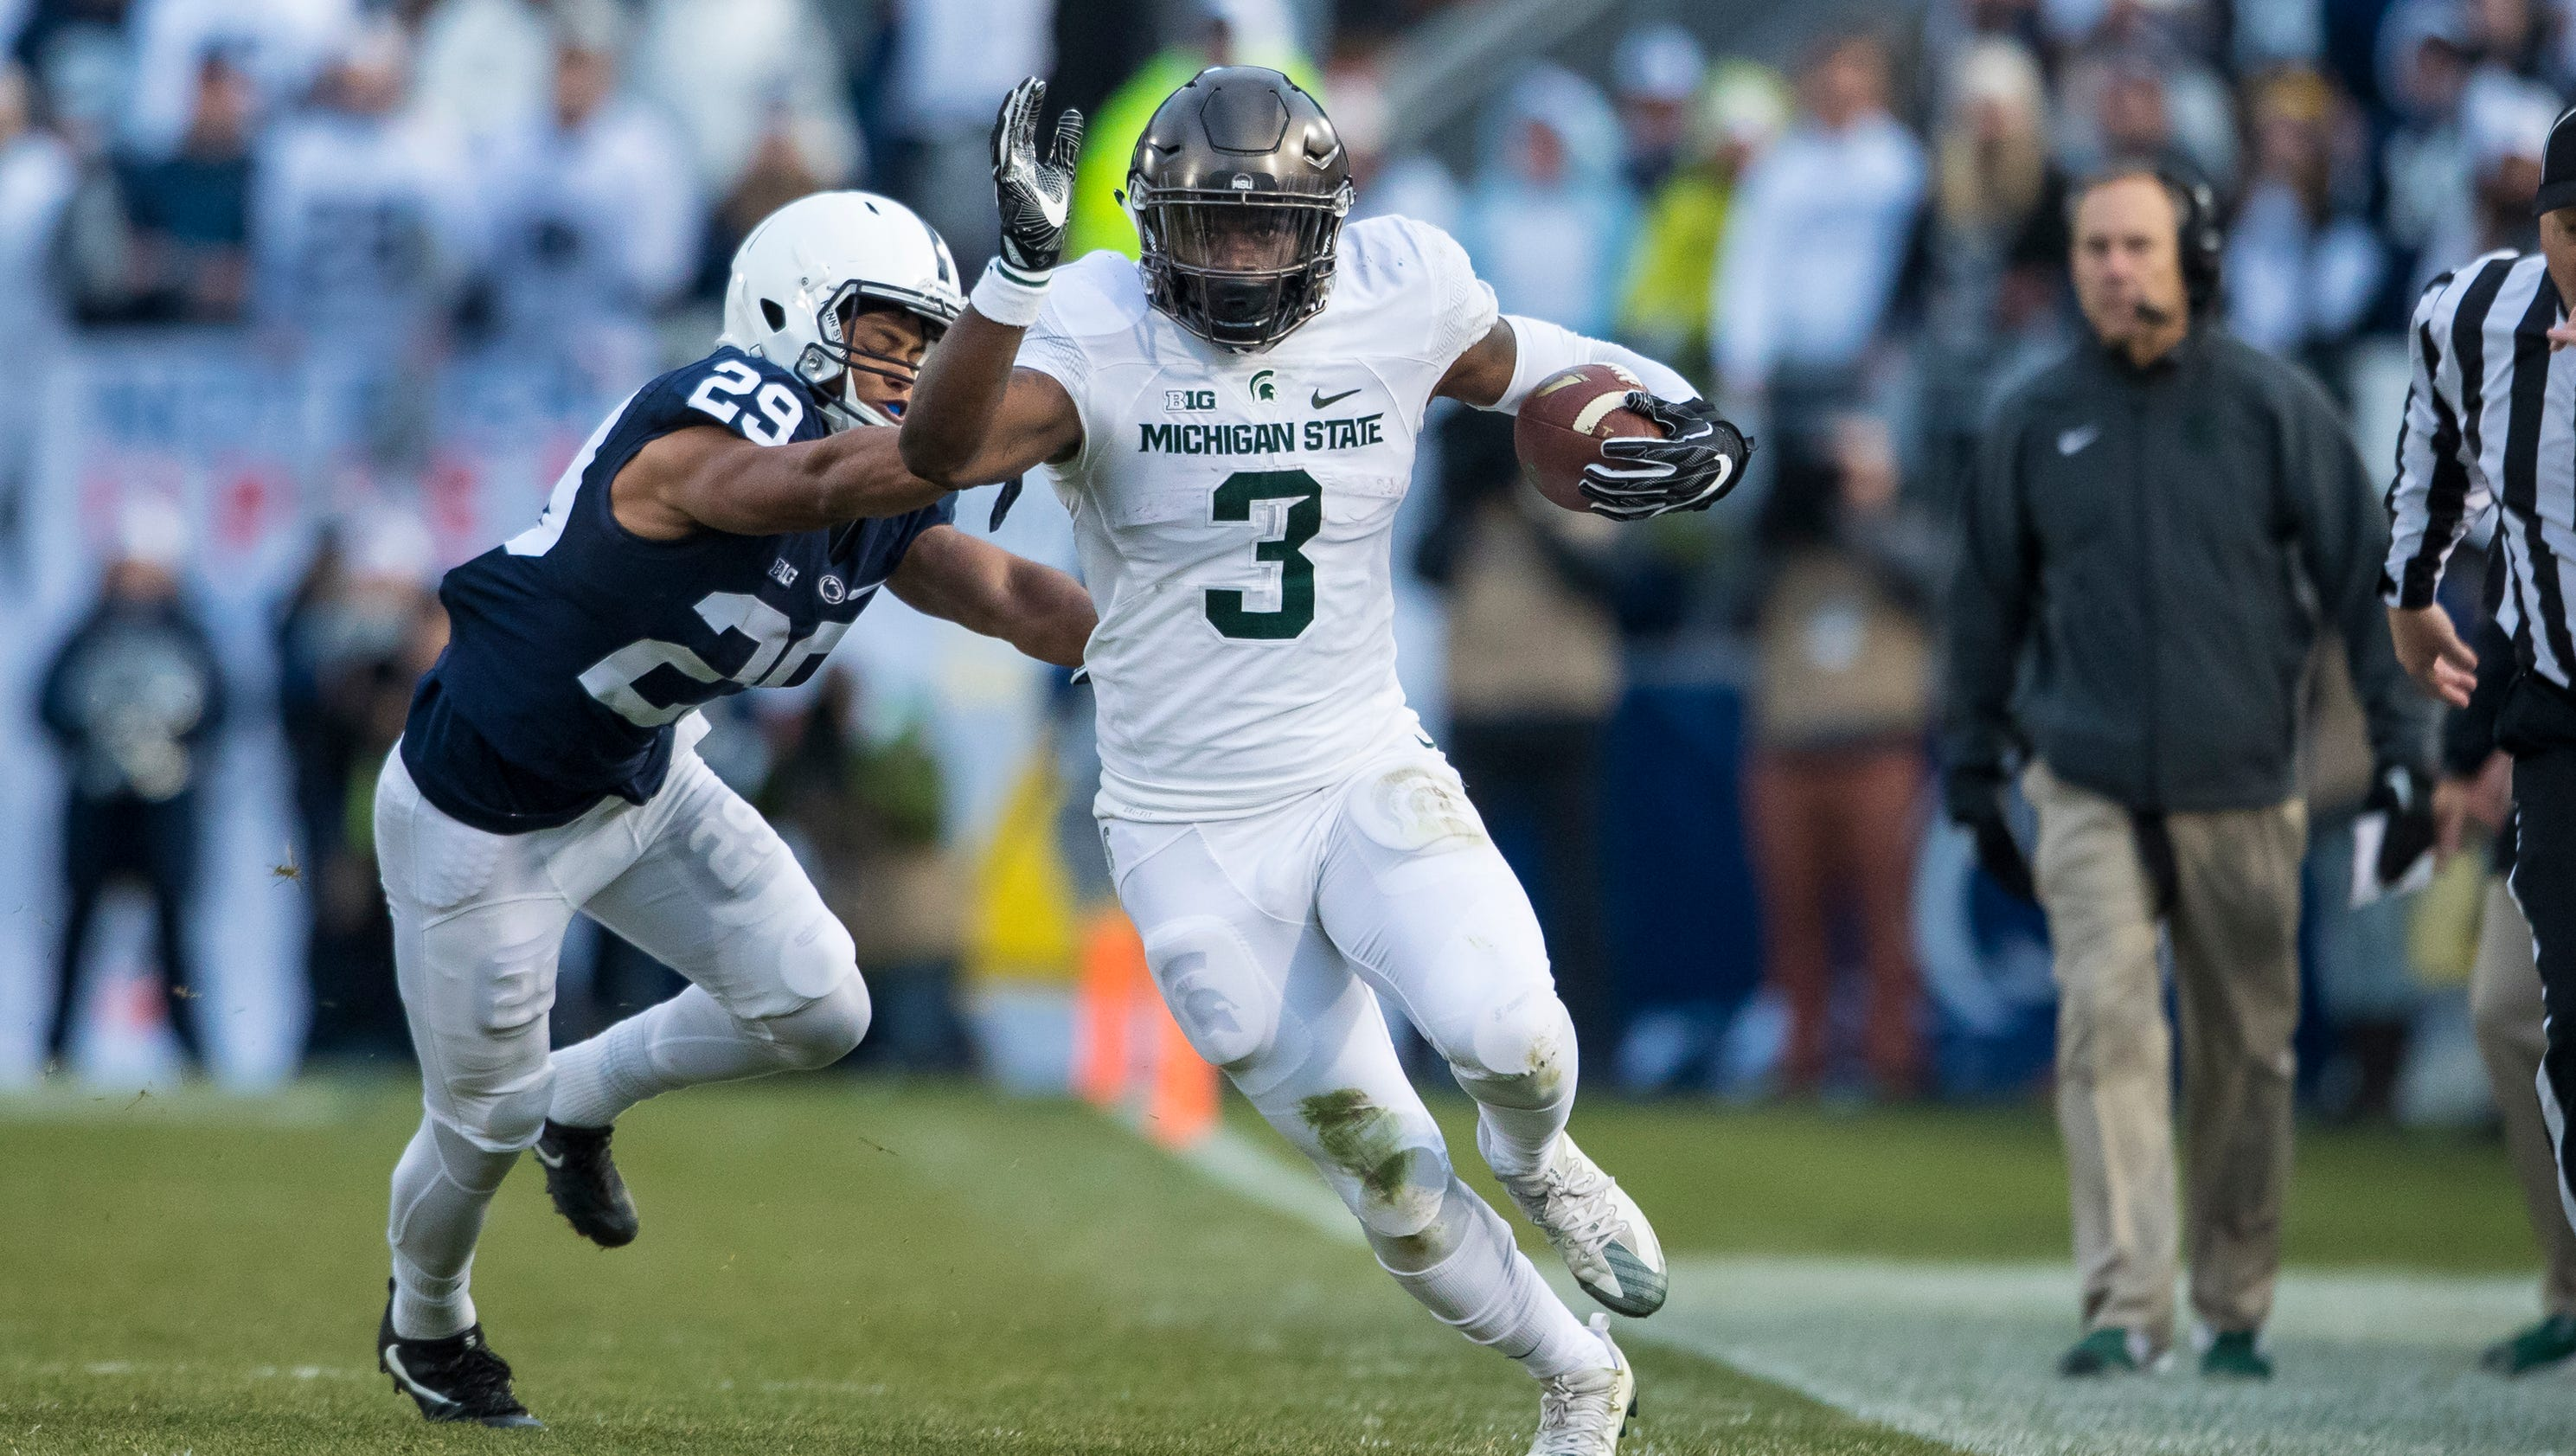 separation shoes 0b3e2 99553 mlive.com Live blog  Penn State adds to big lead